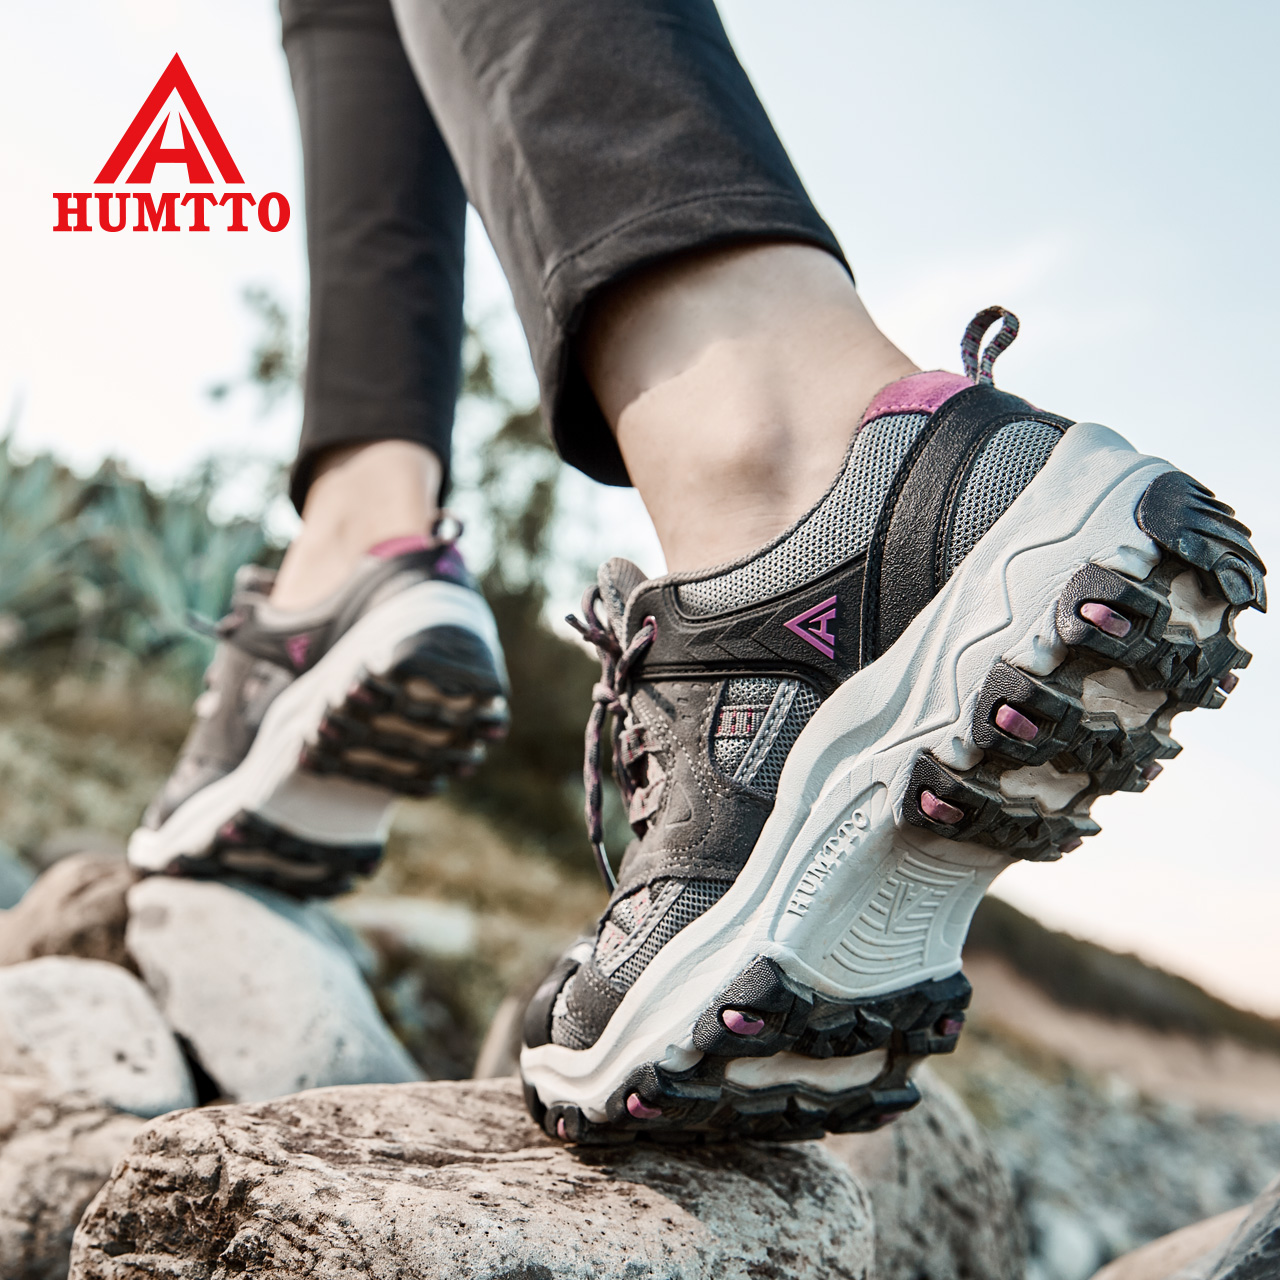 Humvee hiking shoes women waterproof anti-slip hiking shoes spring and summer light breathable wear-resistant climbing shoes mens outdoor sports shoes